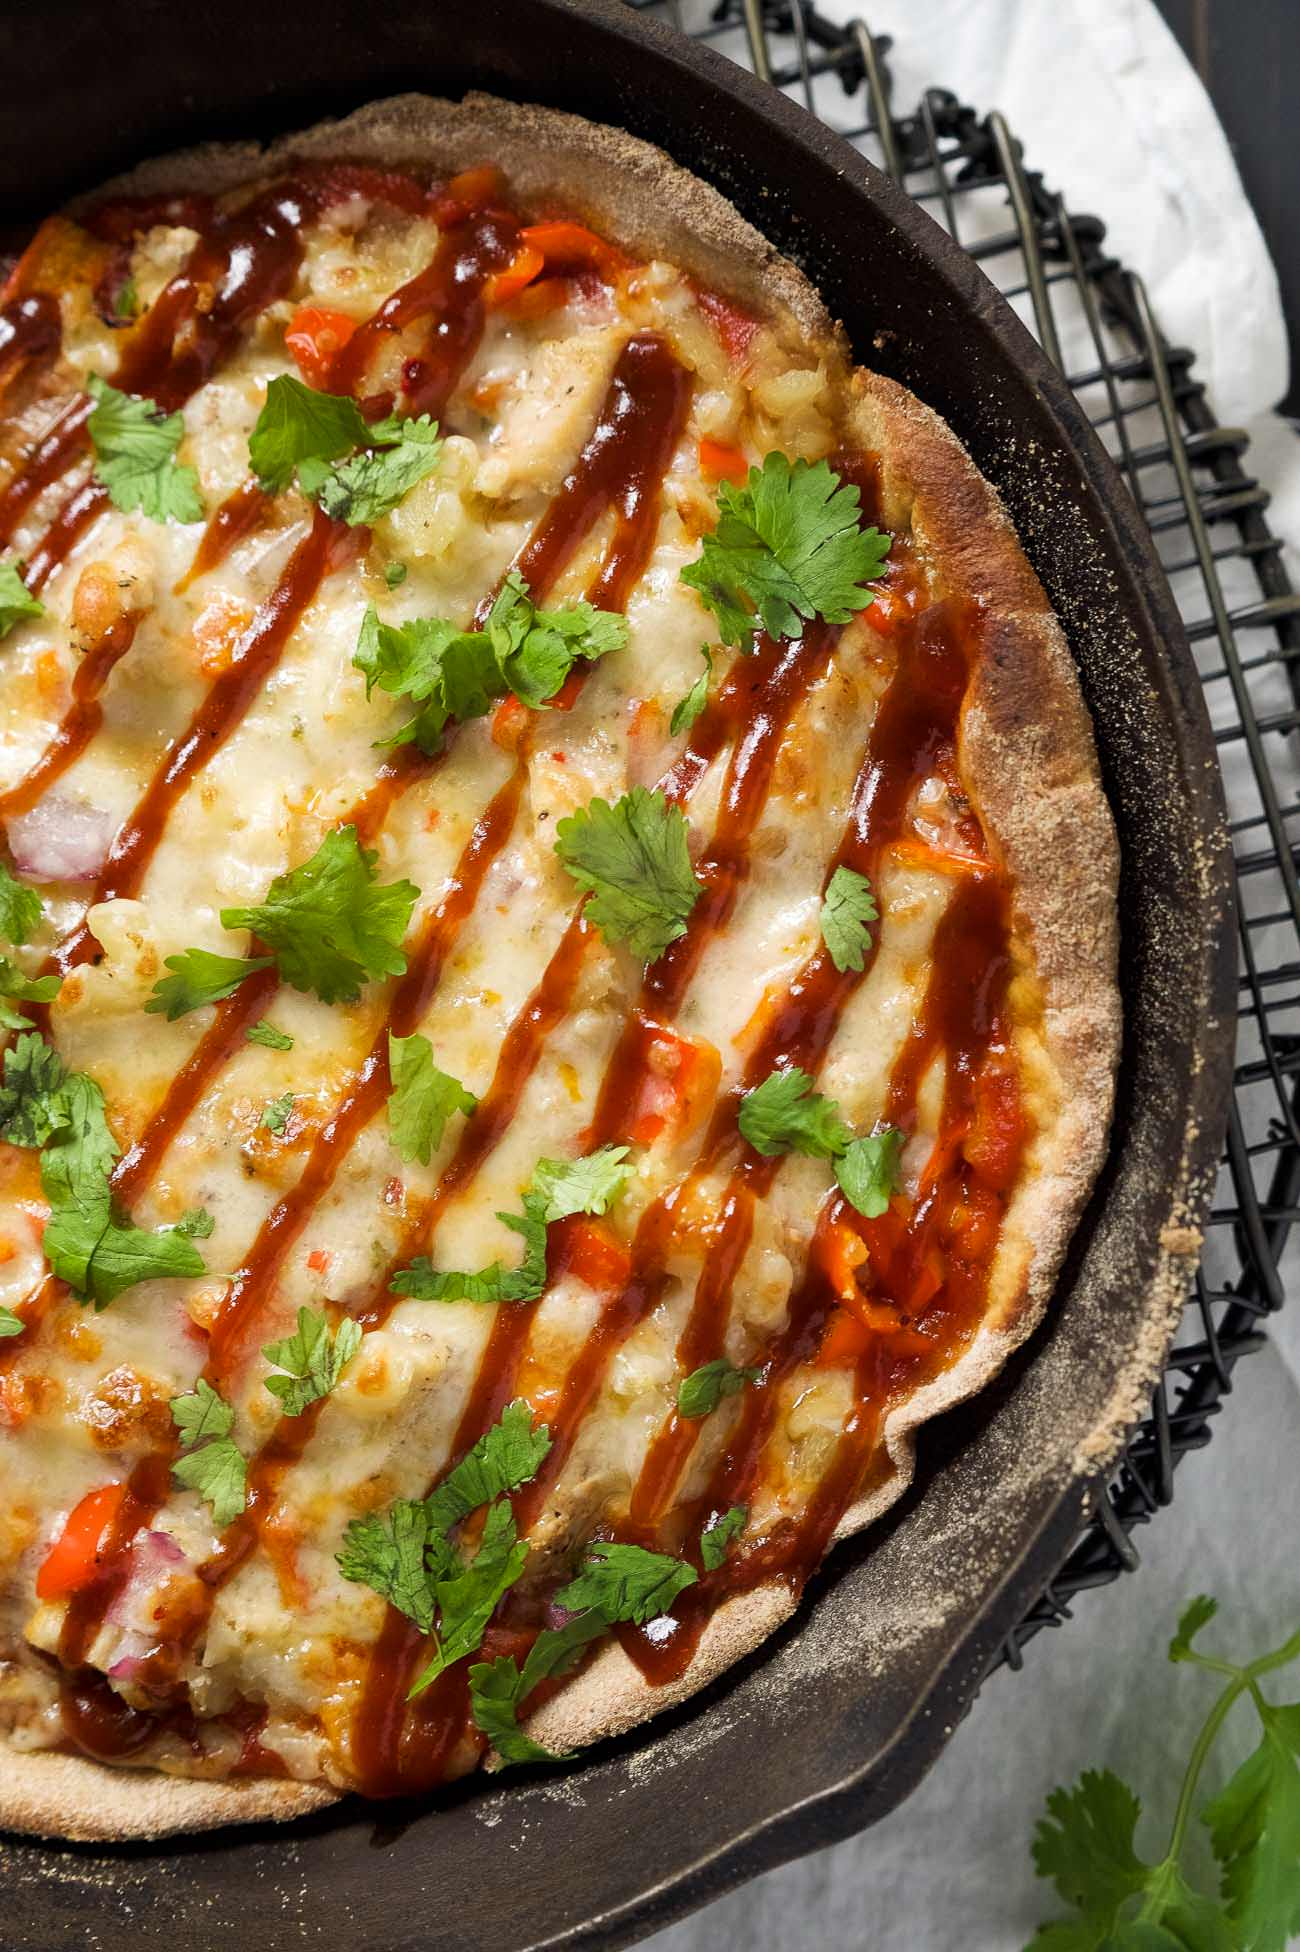 This pizza has two things going for it: sweet and spicy pizza done in one pan. Uno pan. And second, it's cooked in a skillet! The result? One speedy dinner that is crazy good. One point for Megan.